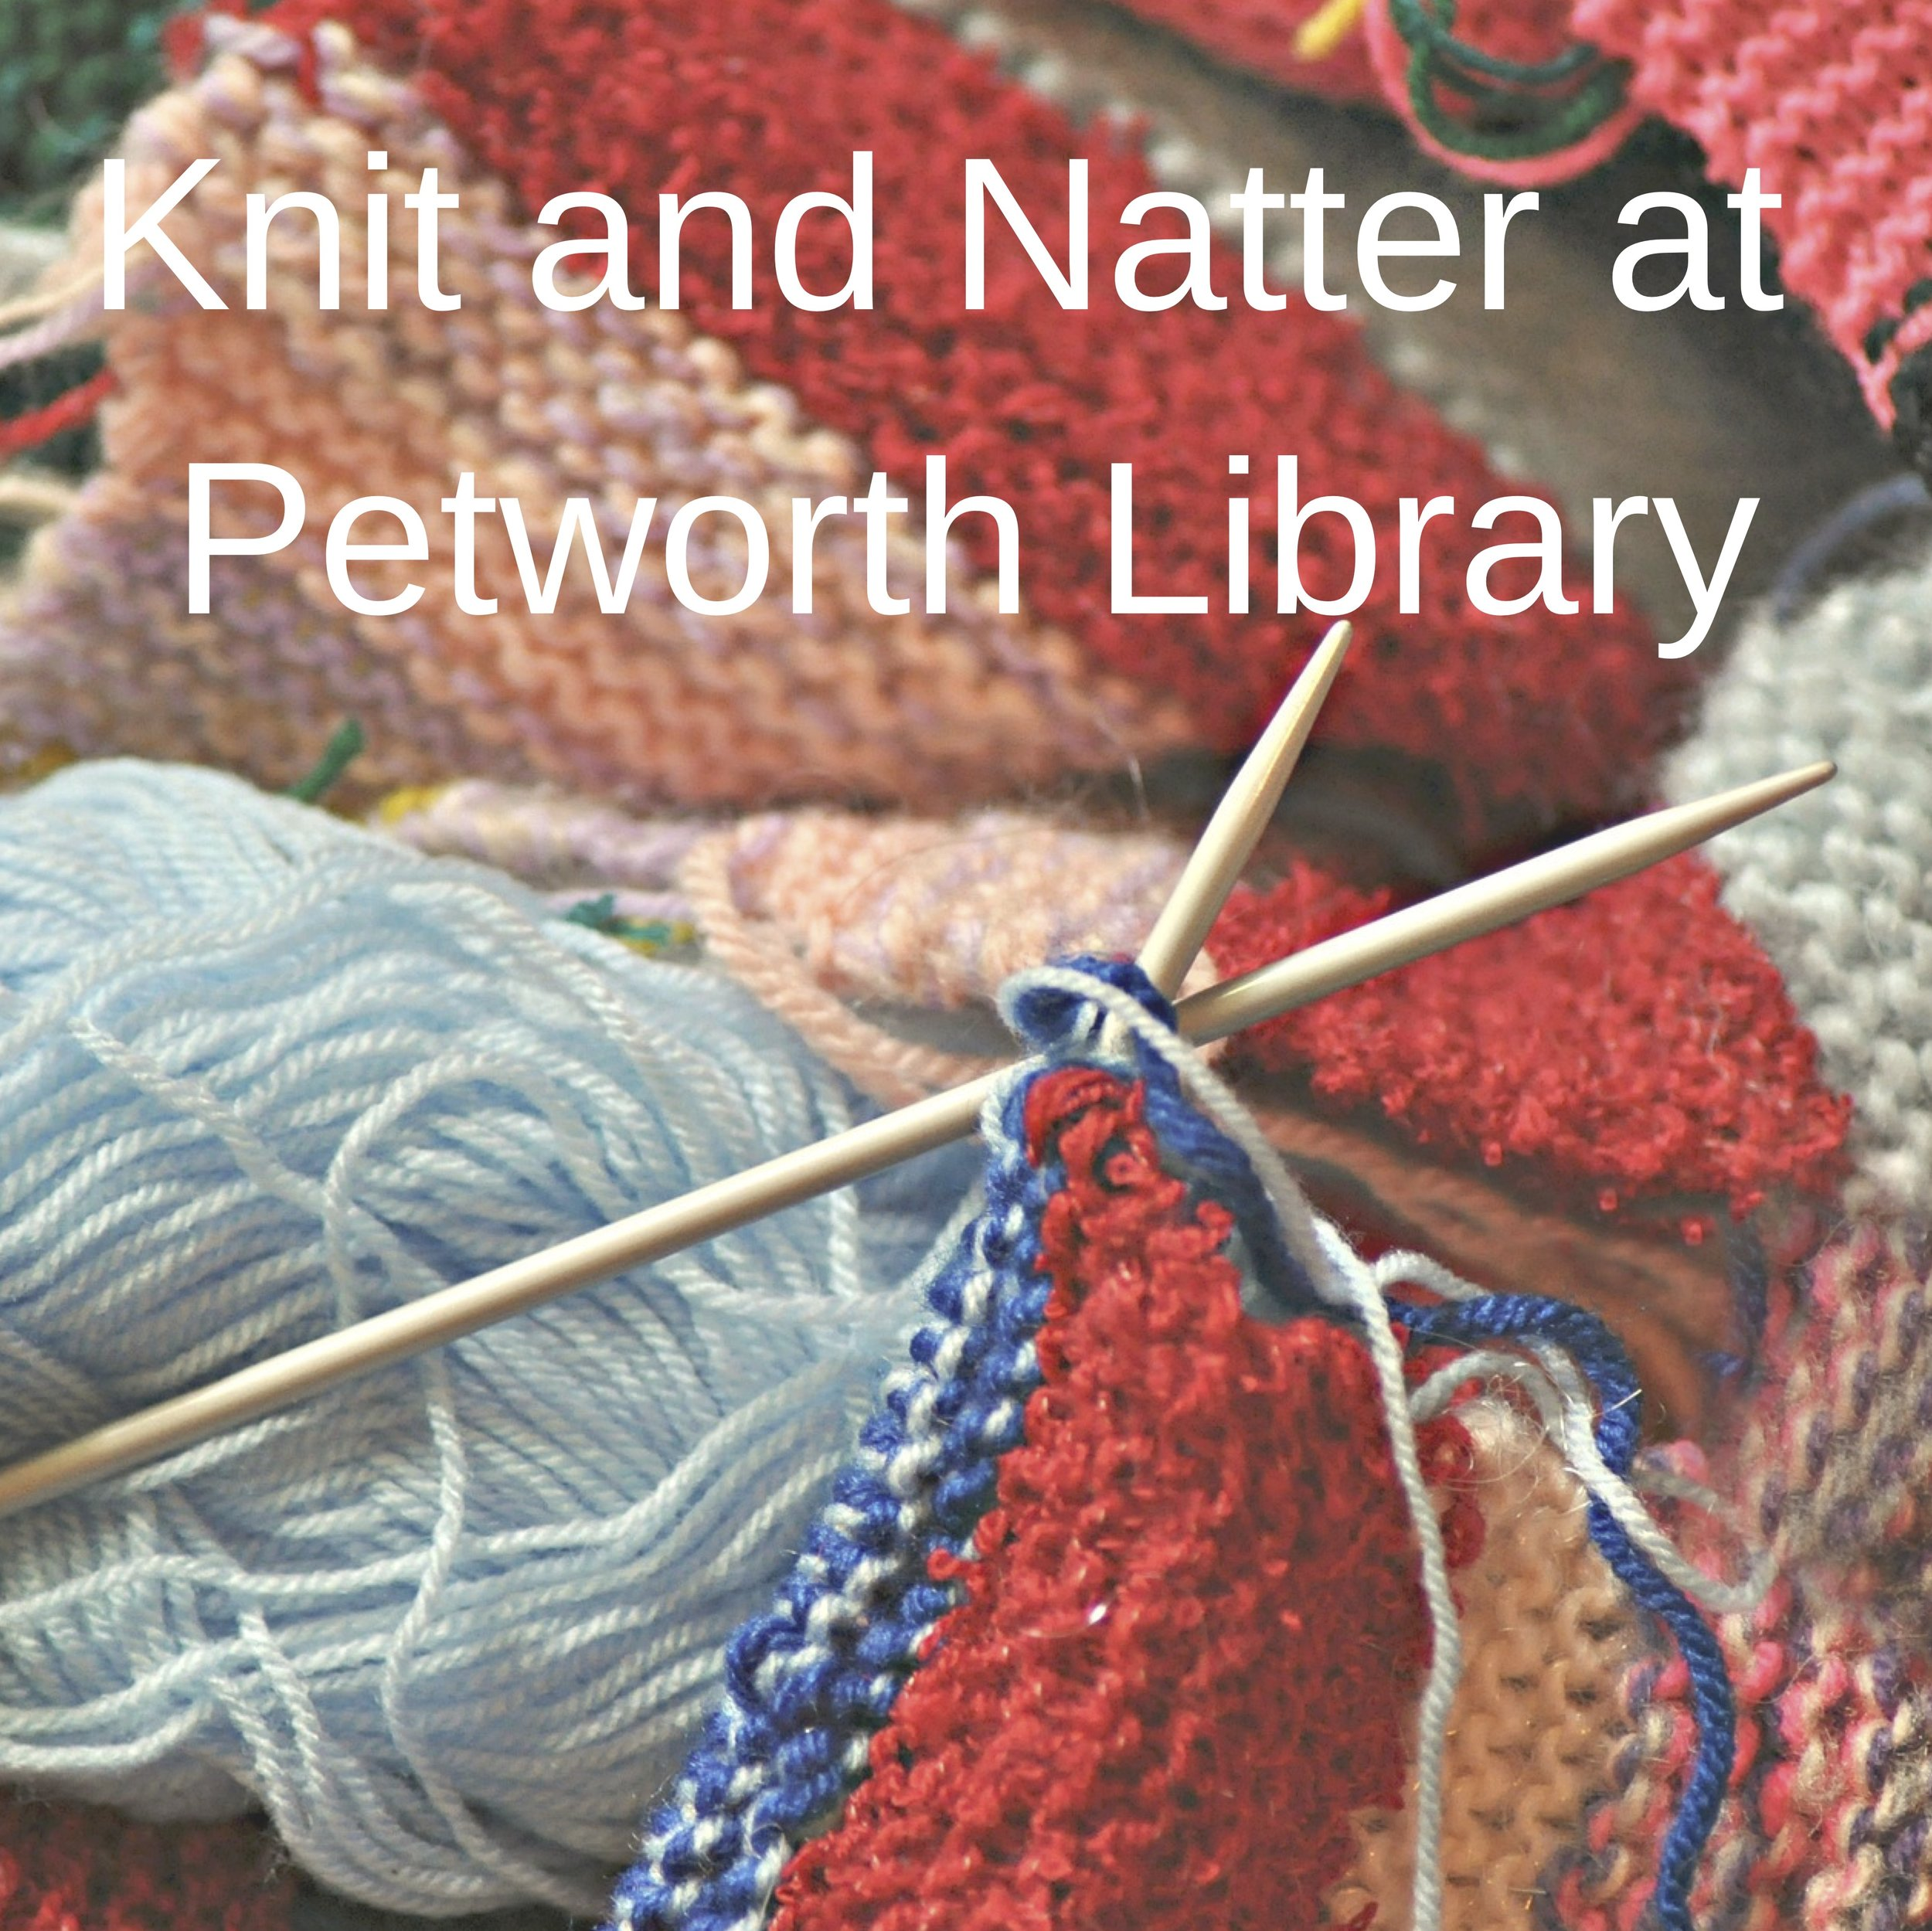 Knit and Natter at Petworth Library.jpg